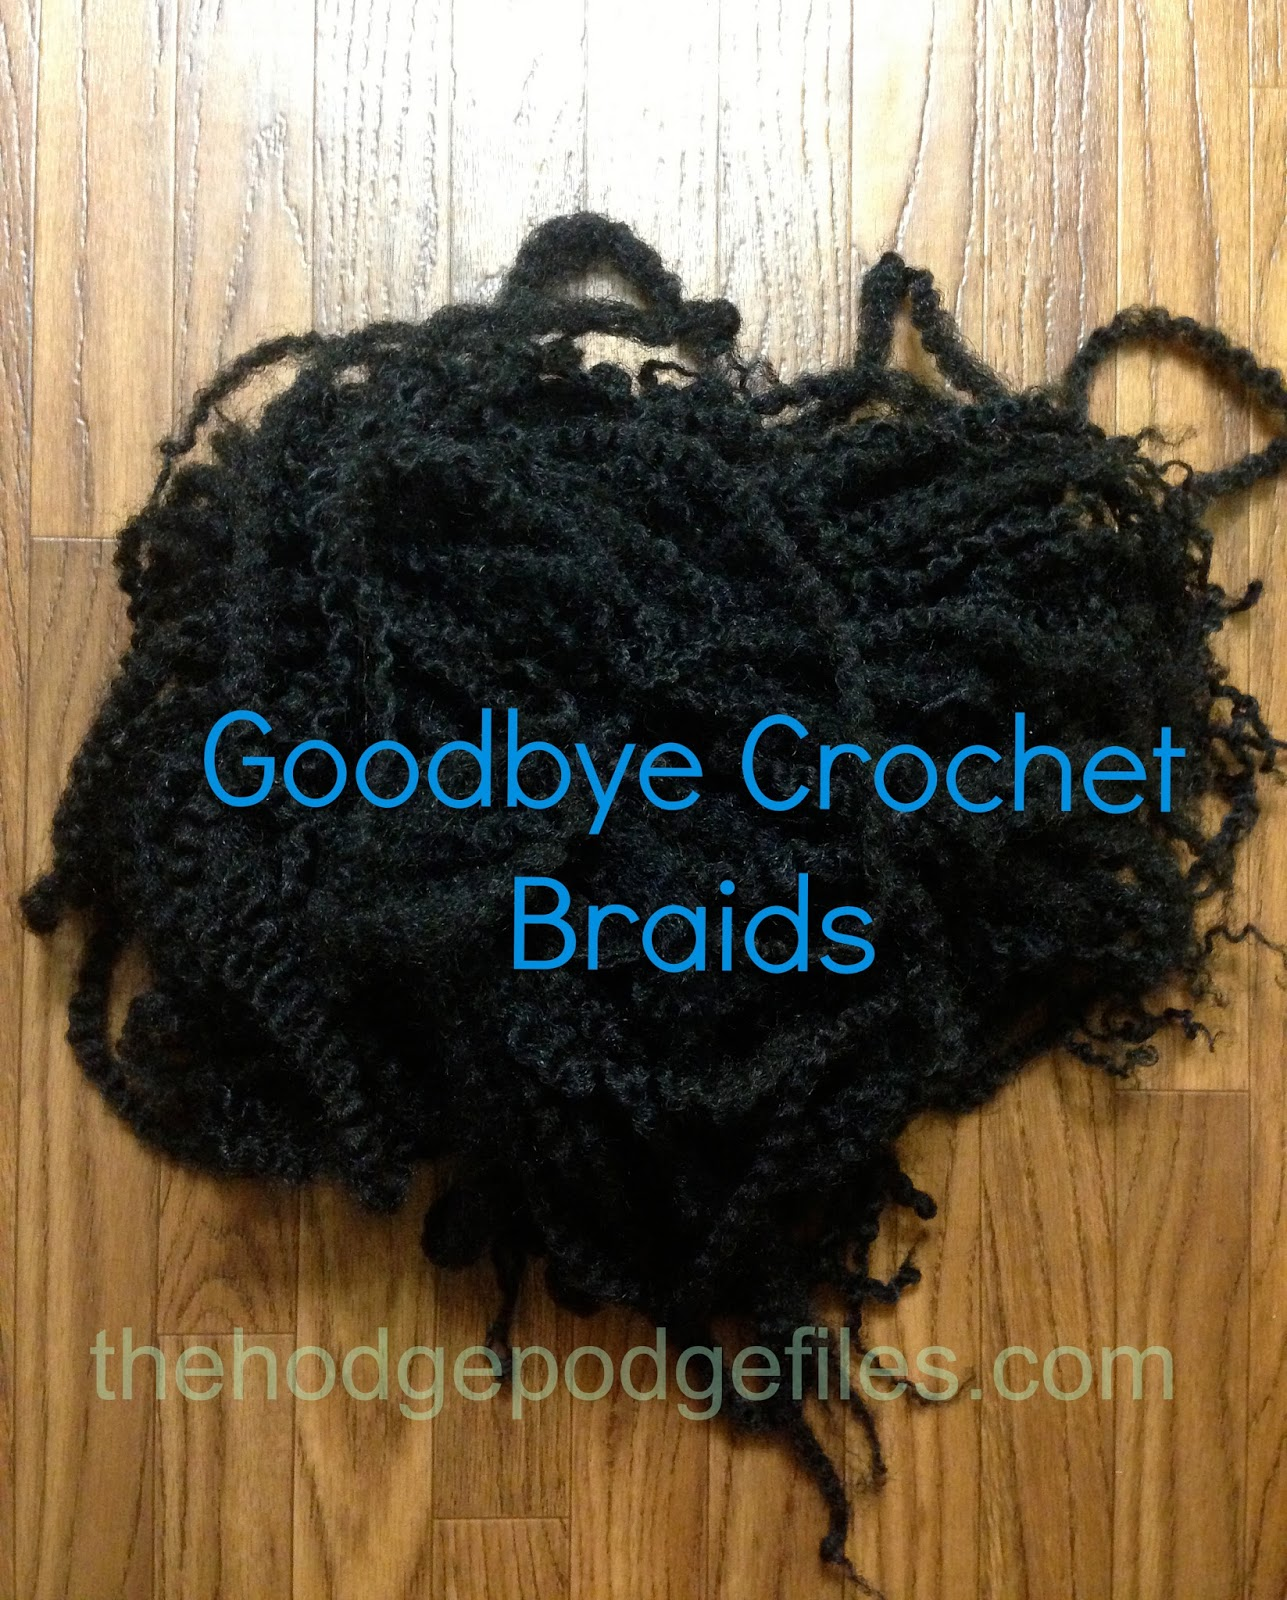 Crochet Hair You Can Wash : Goodbye Crochet Braids with Marley Hair - VeePeeJay